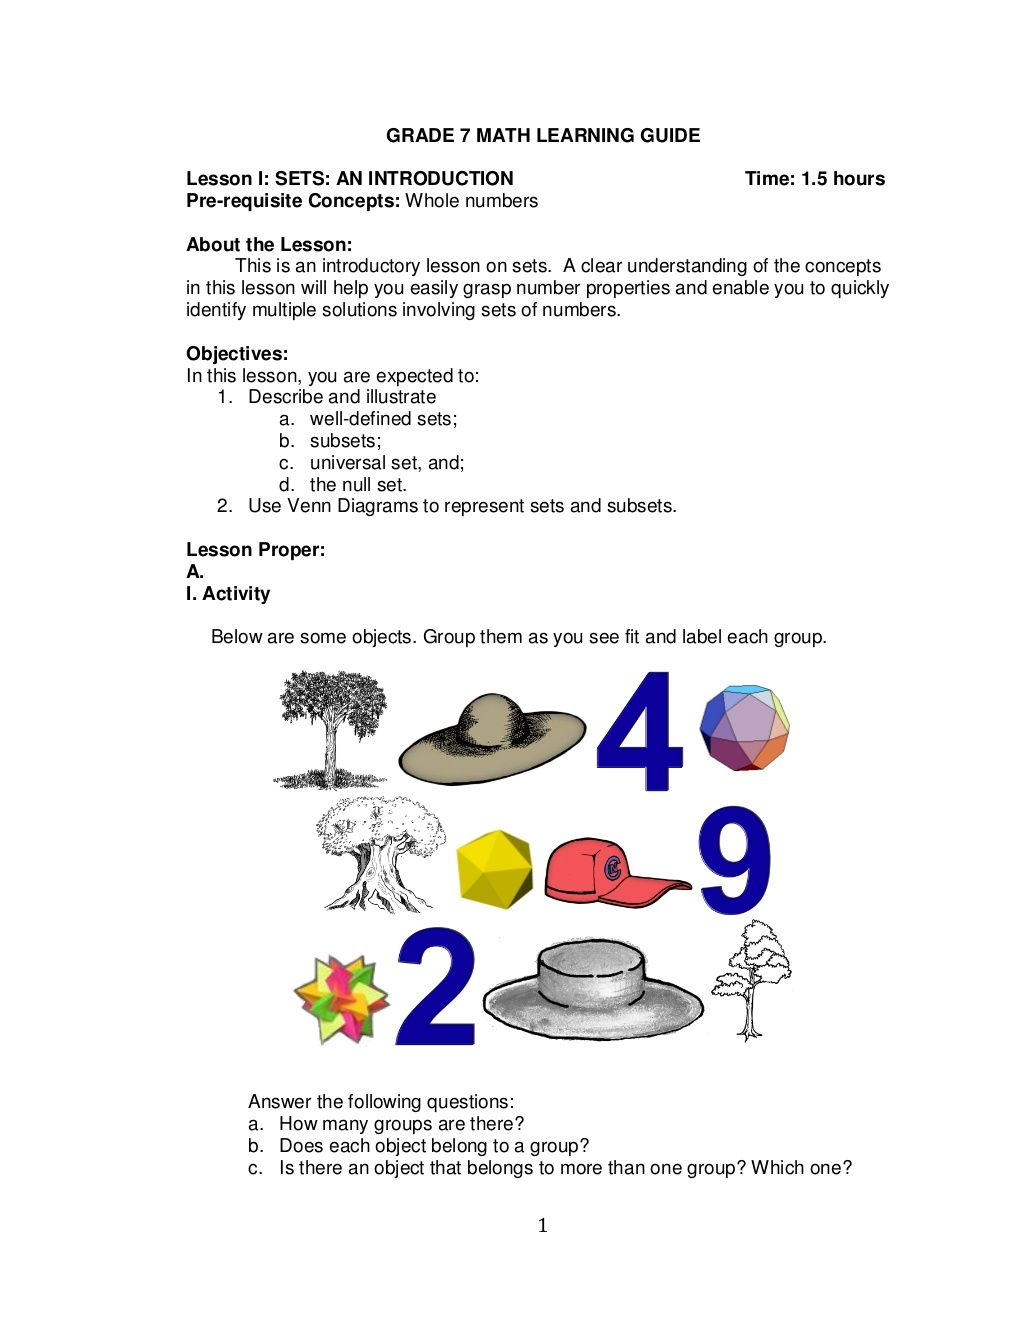 1 Grade 7 Math Learning Guide Lesson I Sets An Introduction Time 1 5 Hour Free Printable Math Worksheets 7th Grade Math Problems Printable Math Worksheets